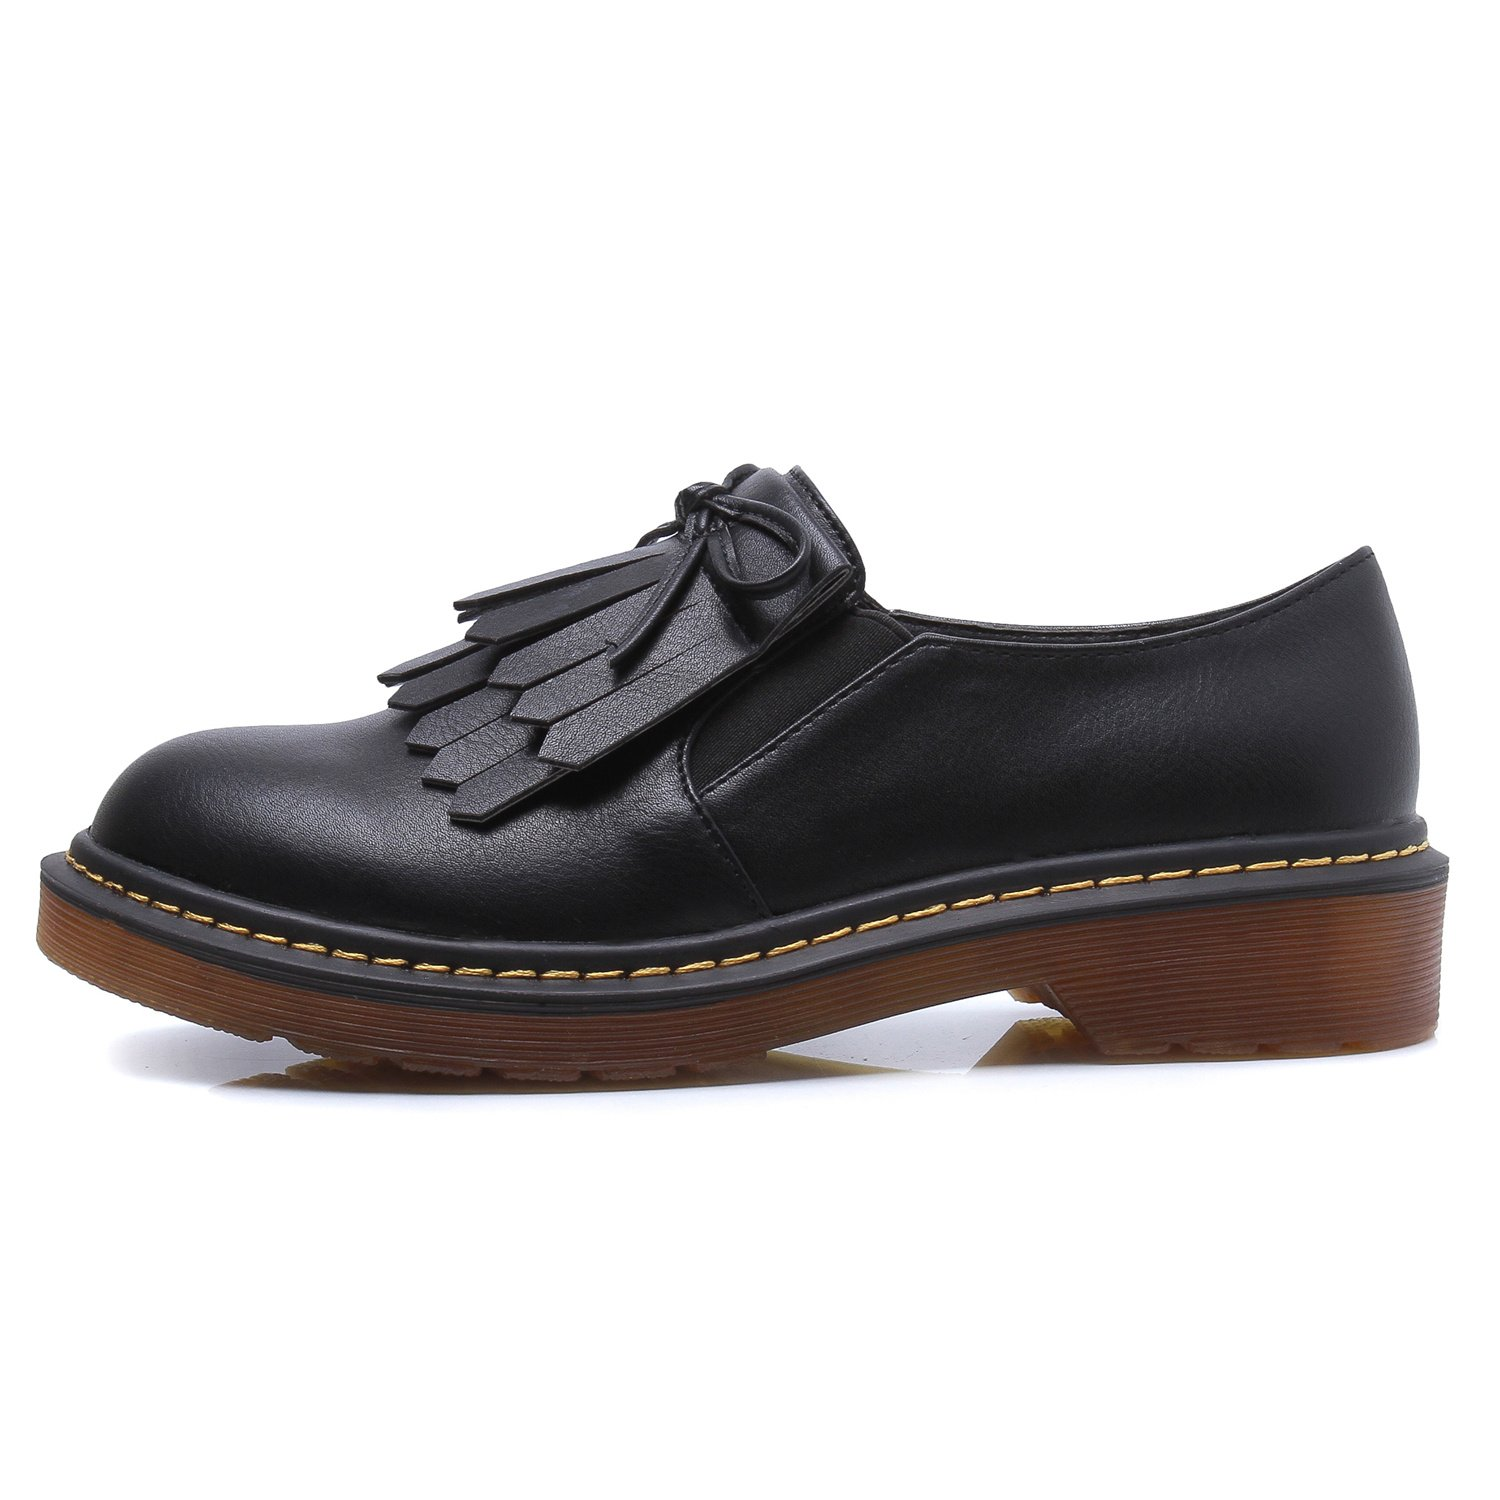 Smilun Lady¡¯s Brogues Classic Lace-Up Flats Shoes For Autumn Winter Spring Slip On Black Size 10 B(M) US by Smilun (Image #2)